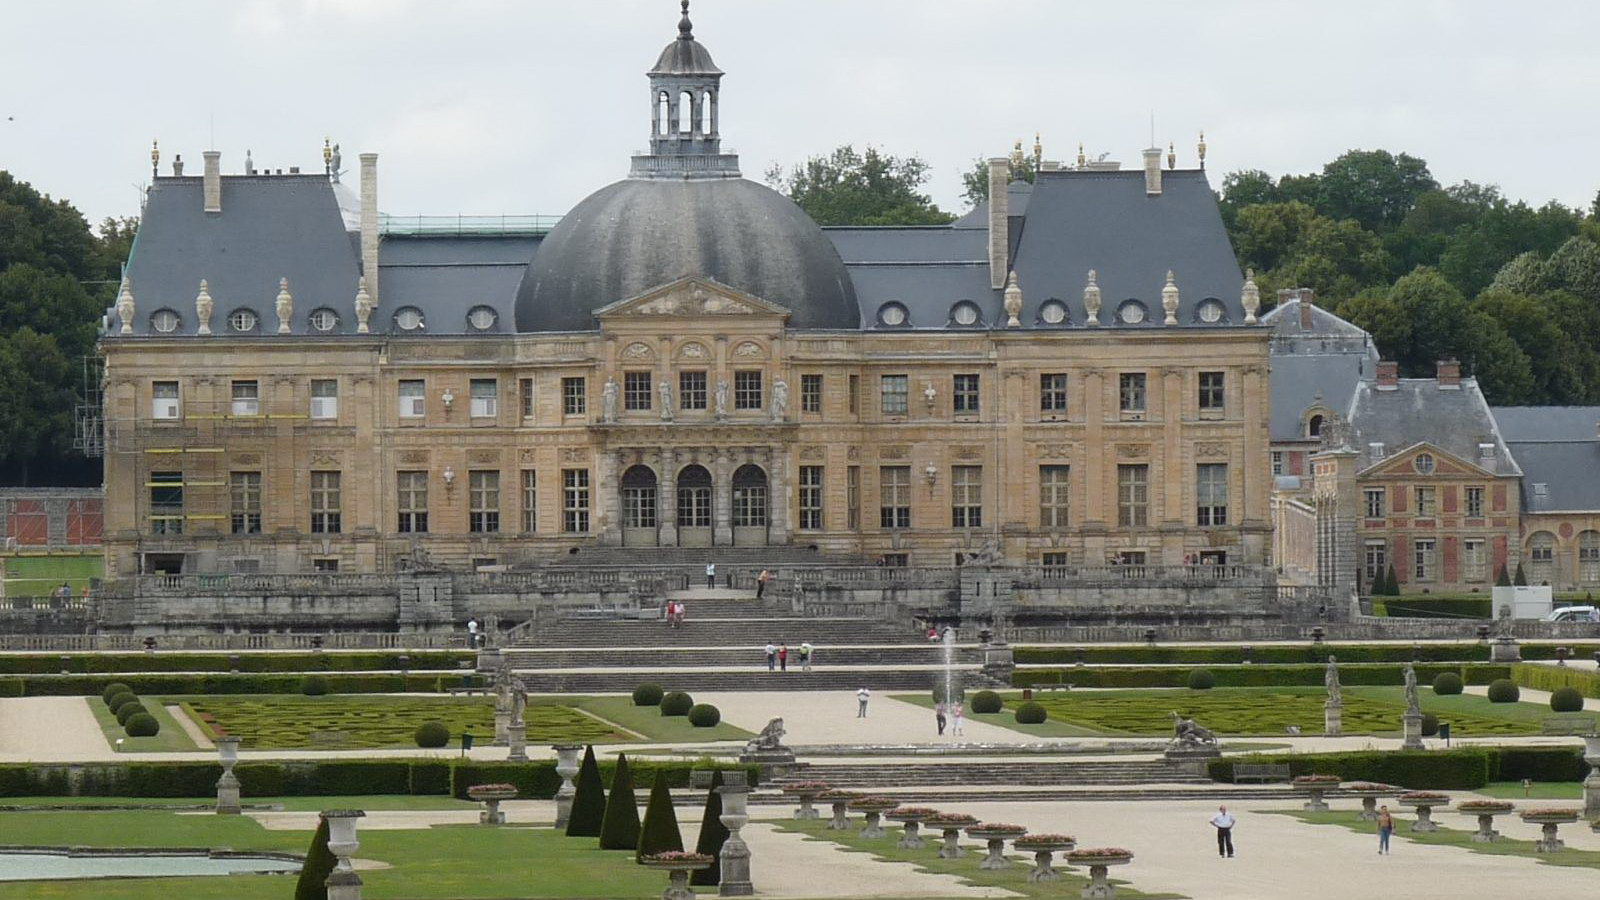 Let's take a walk in the garden at Vaux-le-Vicomte in Maincy, France